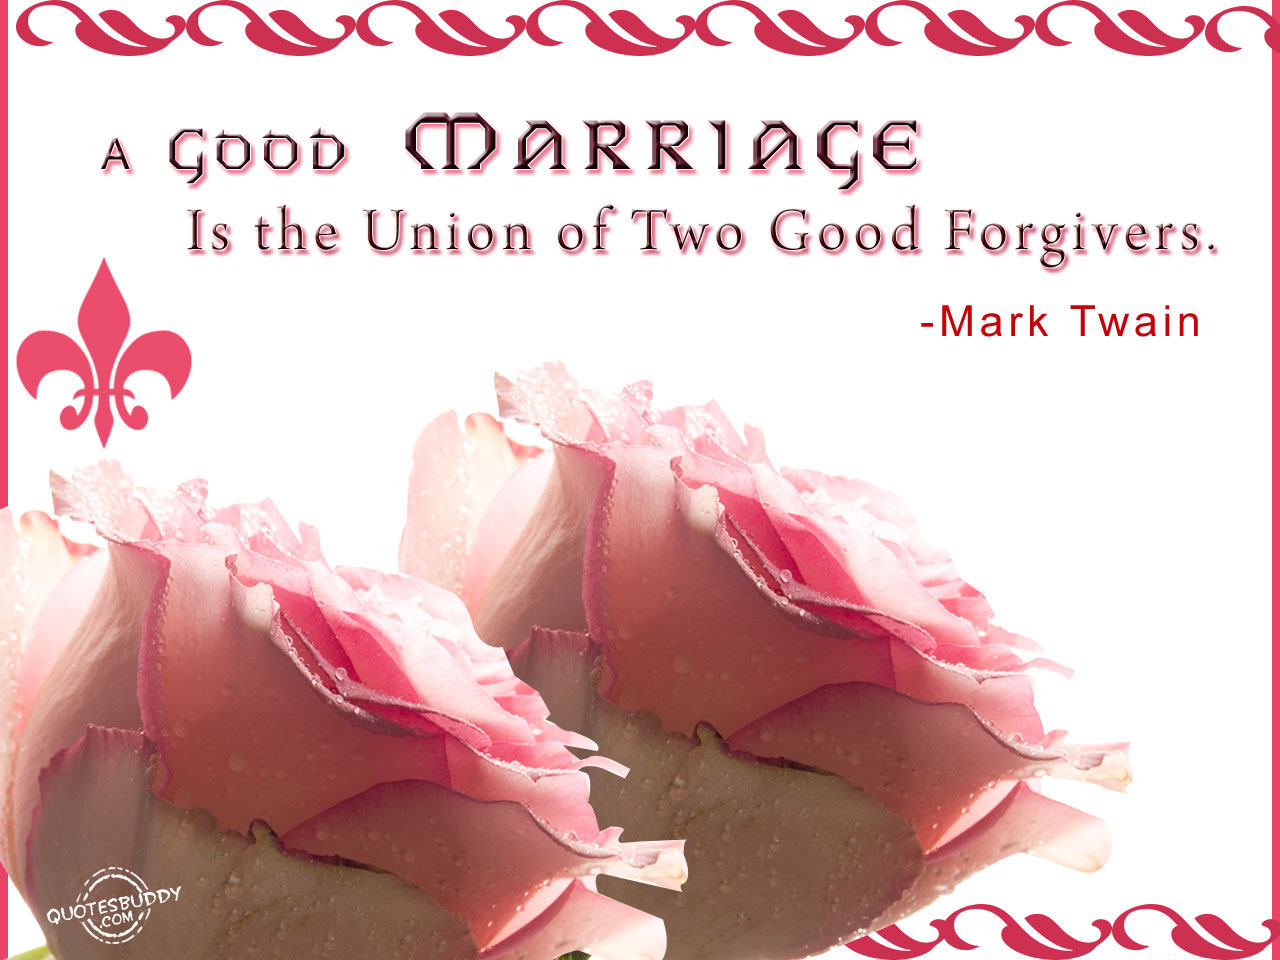 A Good Marriage Is The Union Of Two Good Forgivers